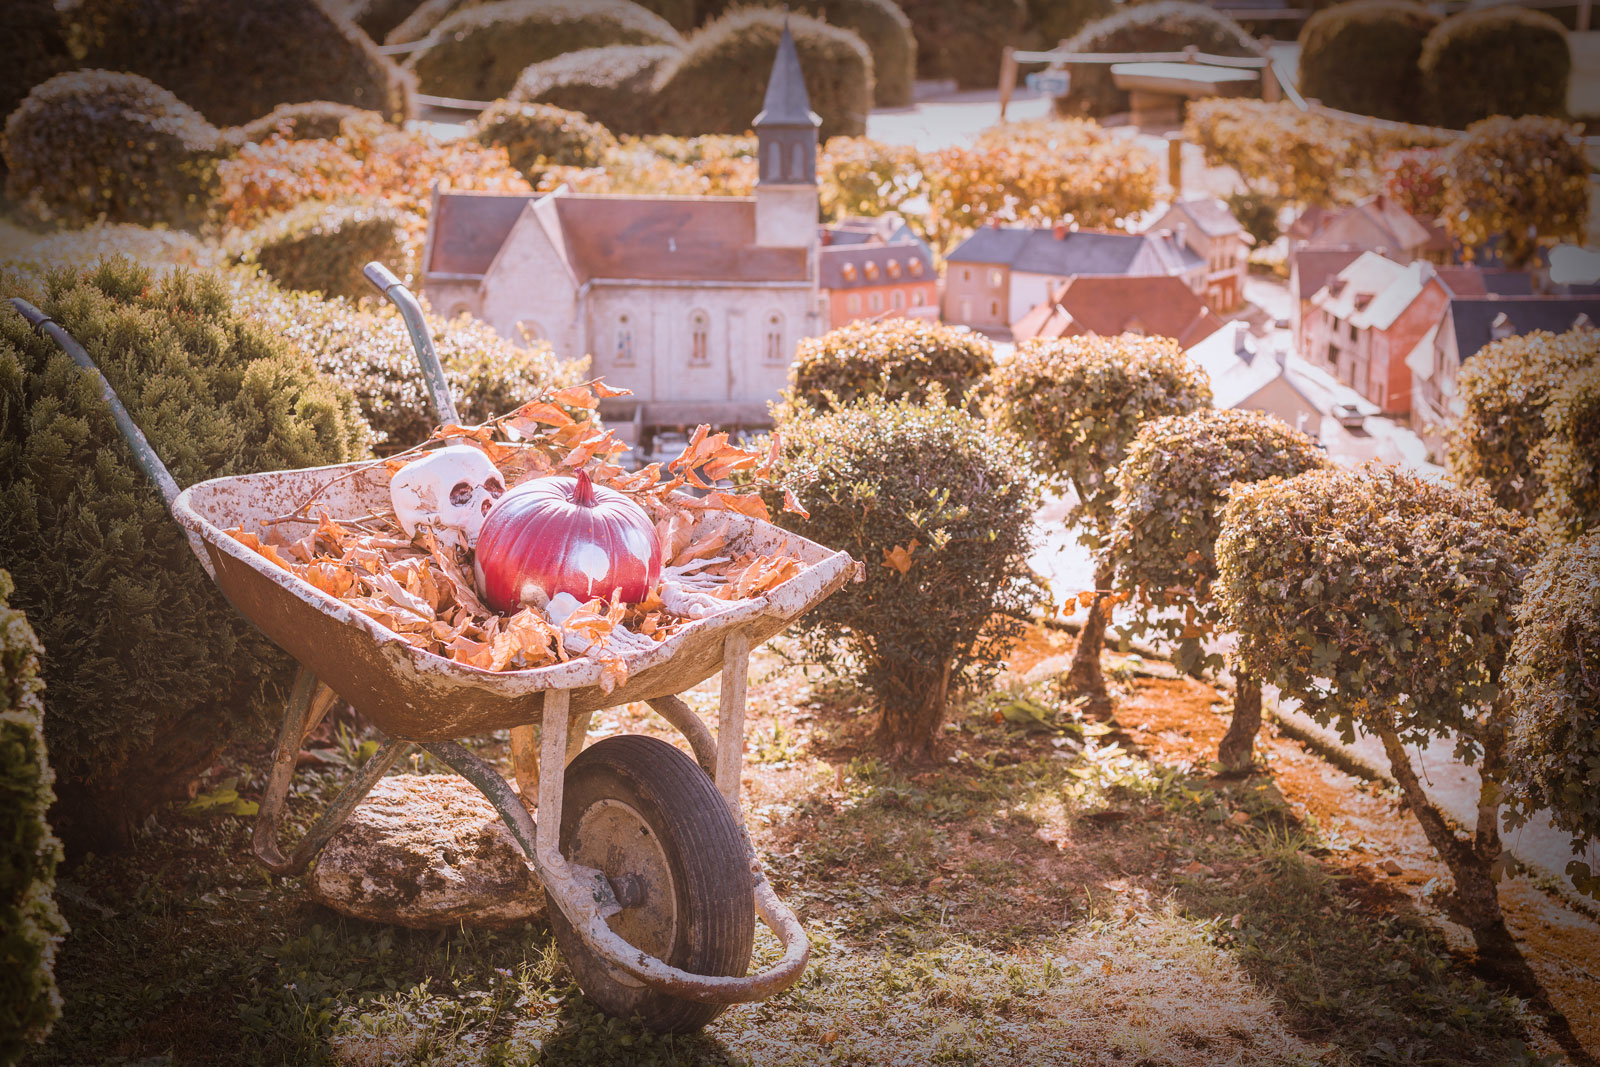 Ninaah Bulles, visite, lifestyle, halloween France miniature, voyage, France, sortie, paris, ile de france